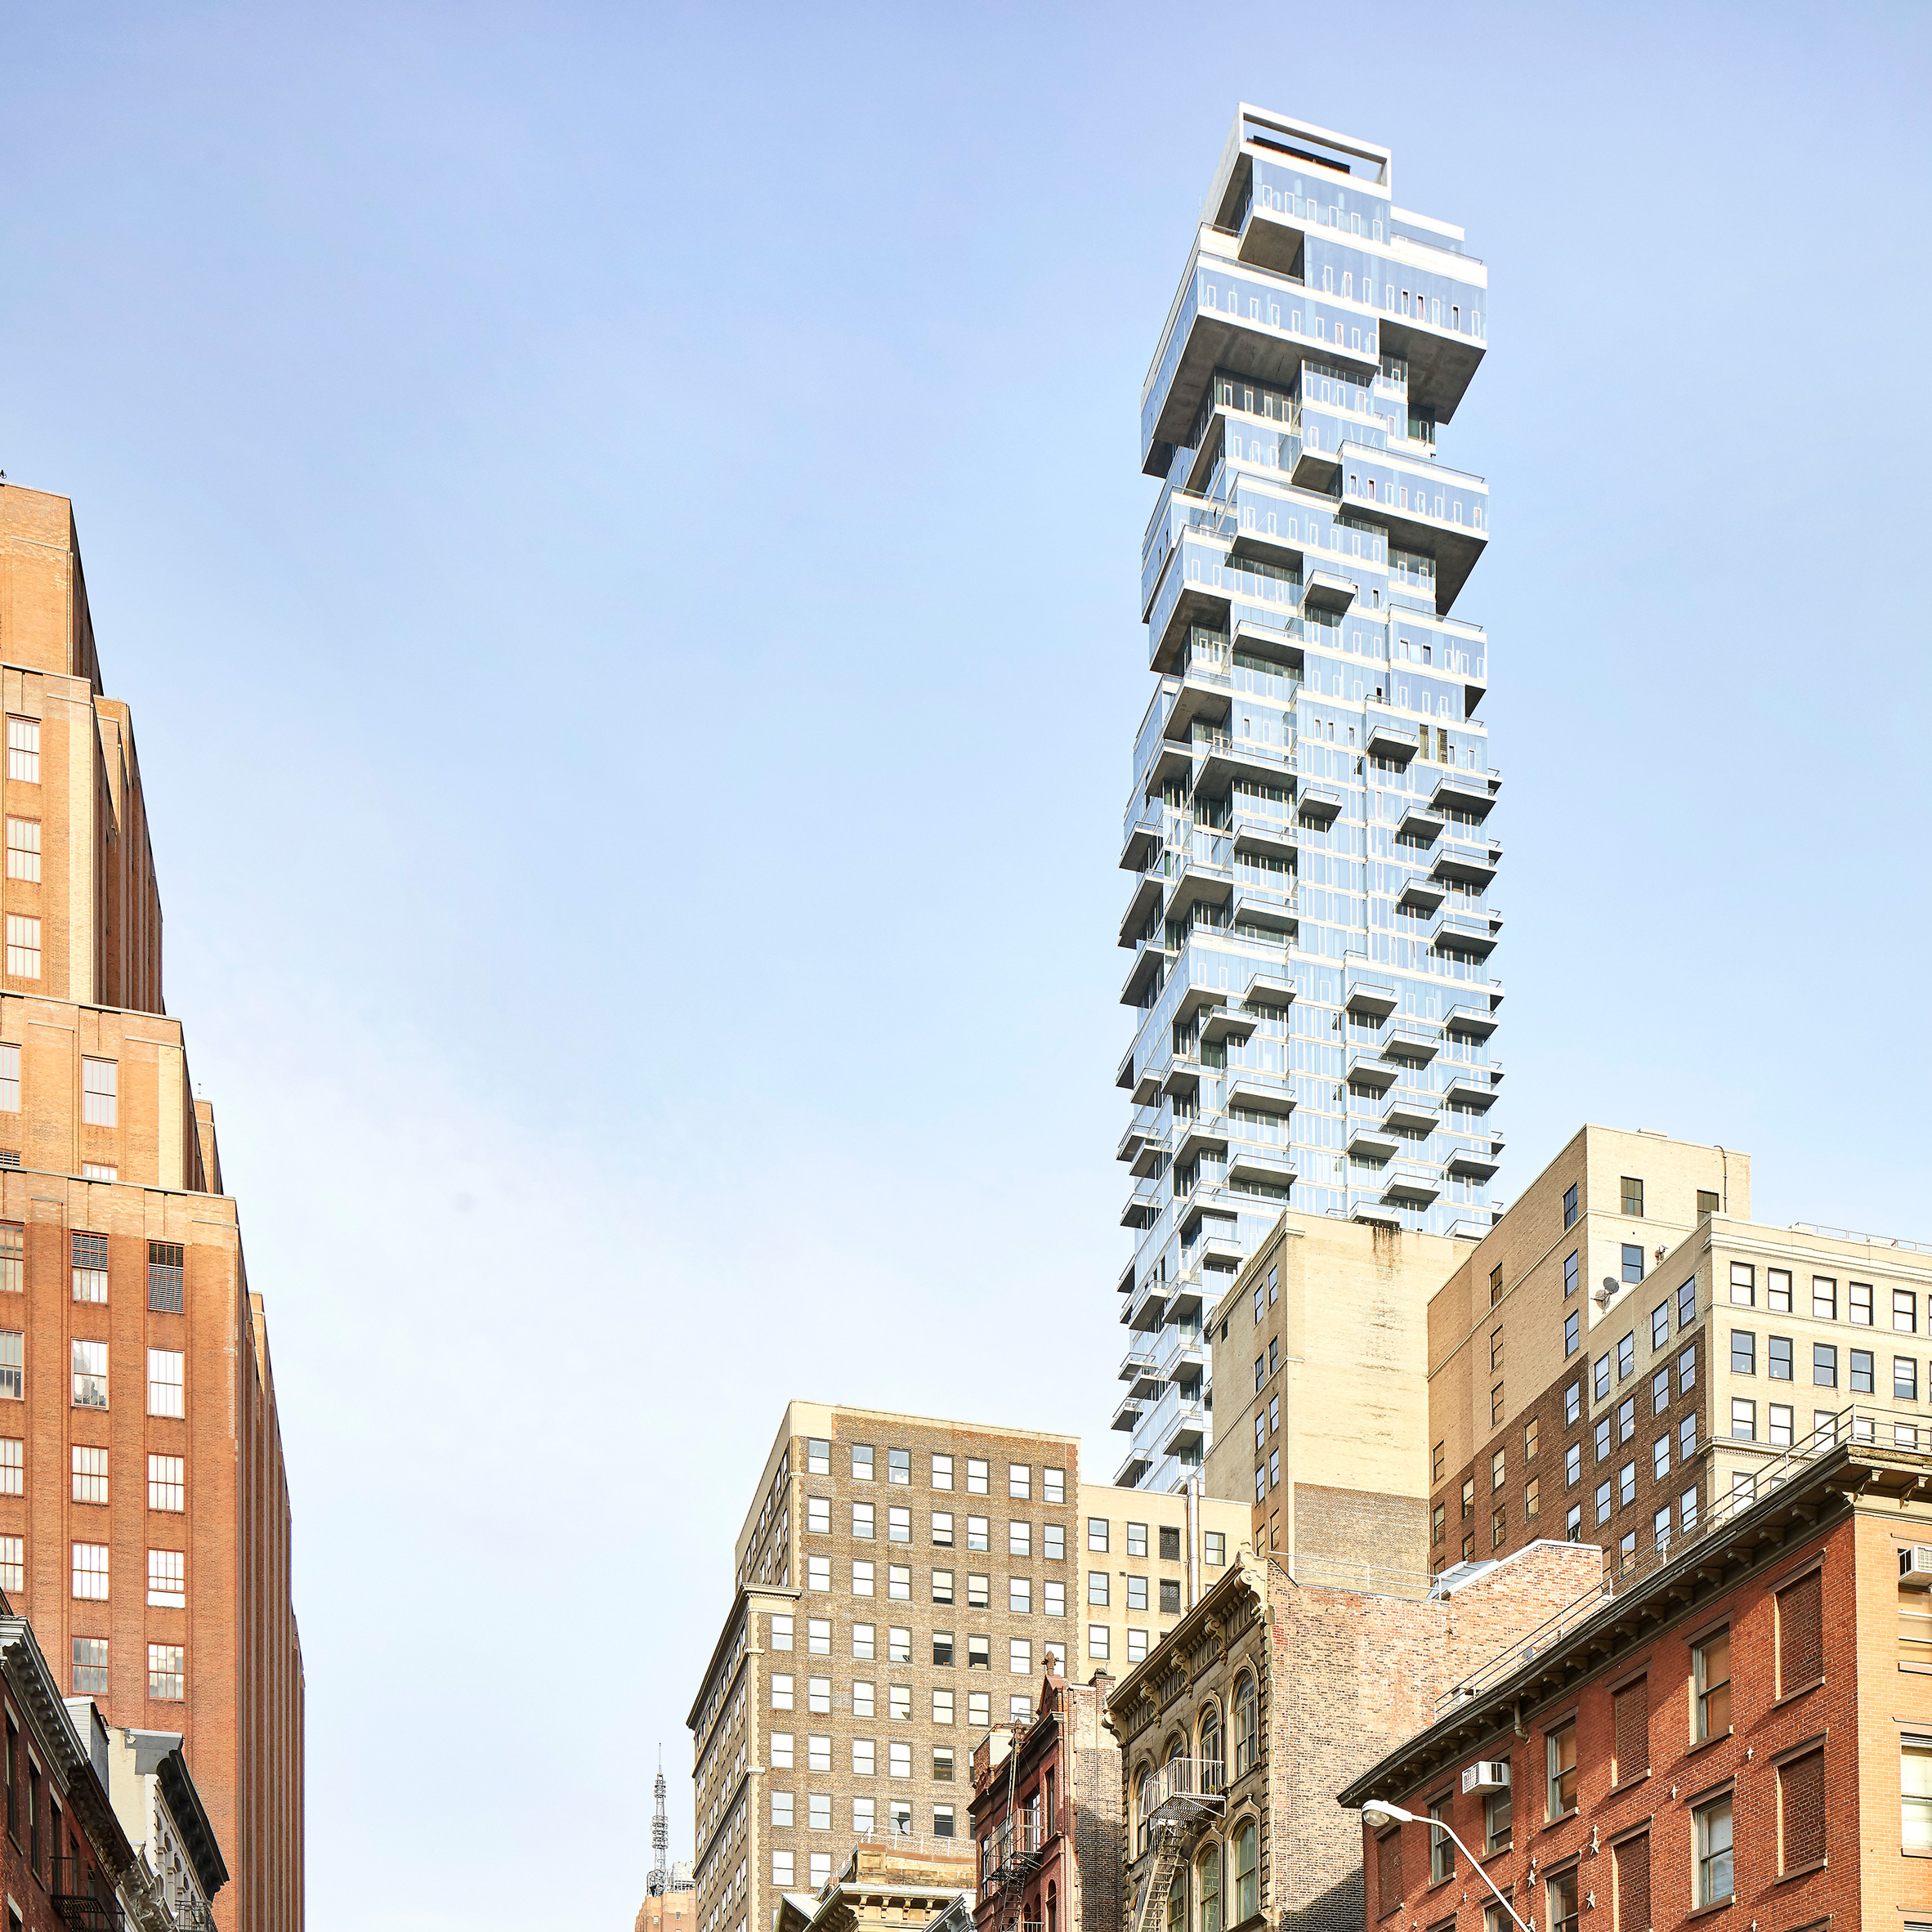 56 Leonard by Herzog & de Meuron, New York City, USA